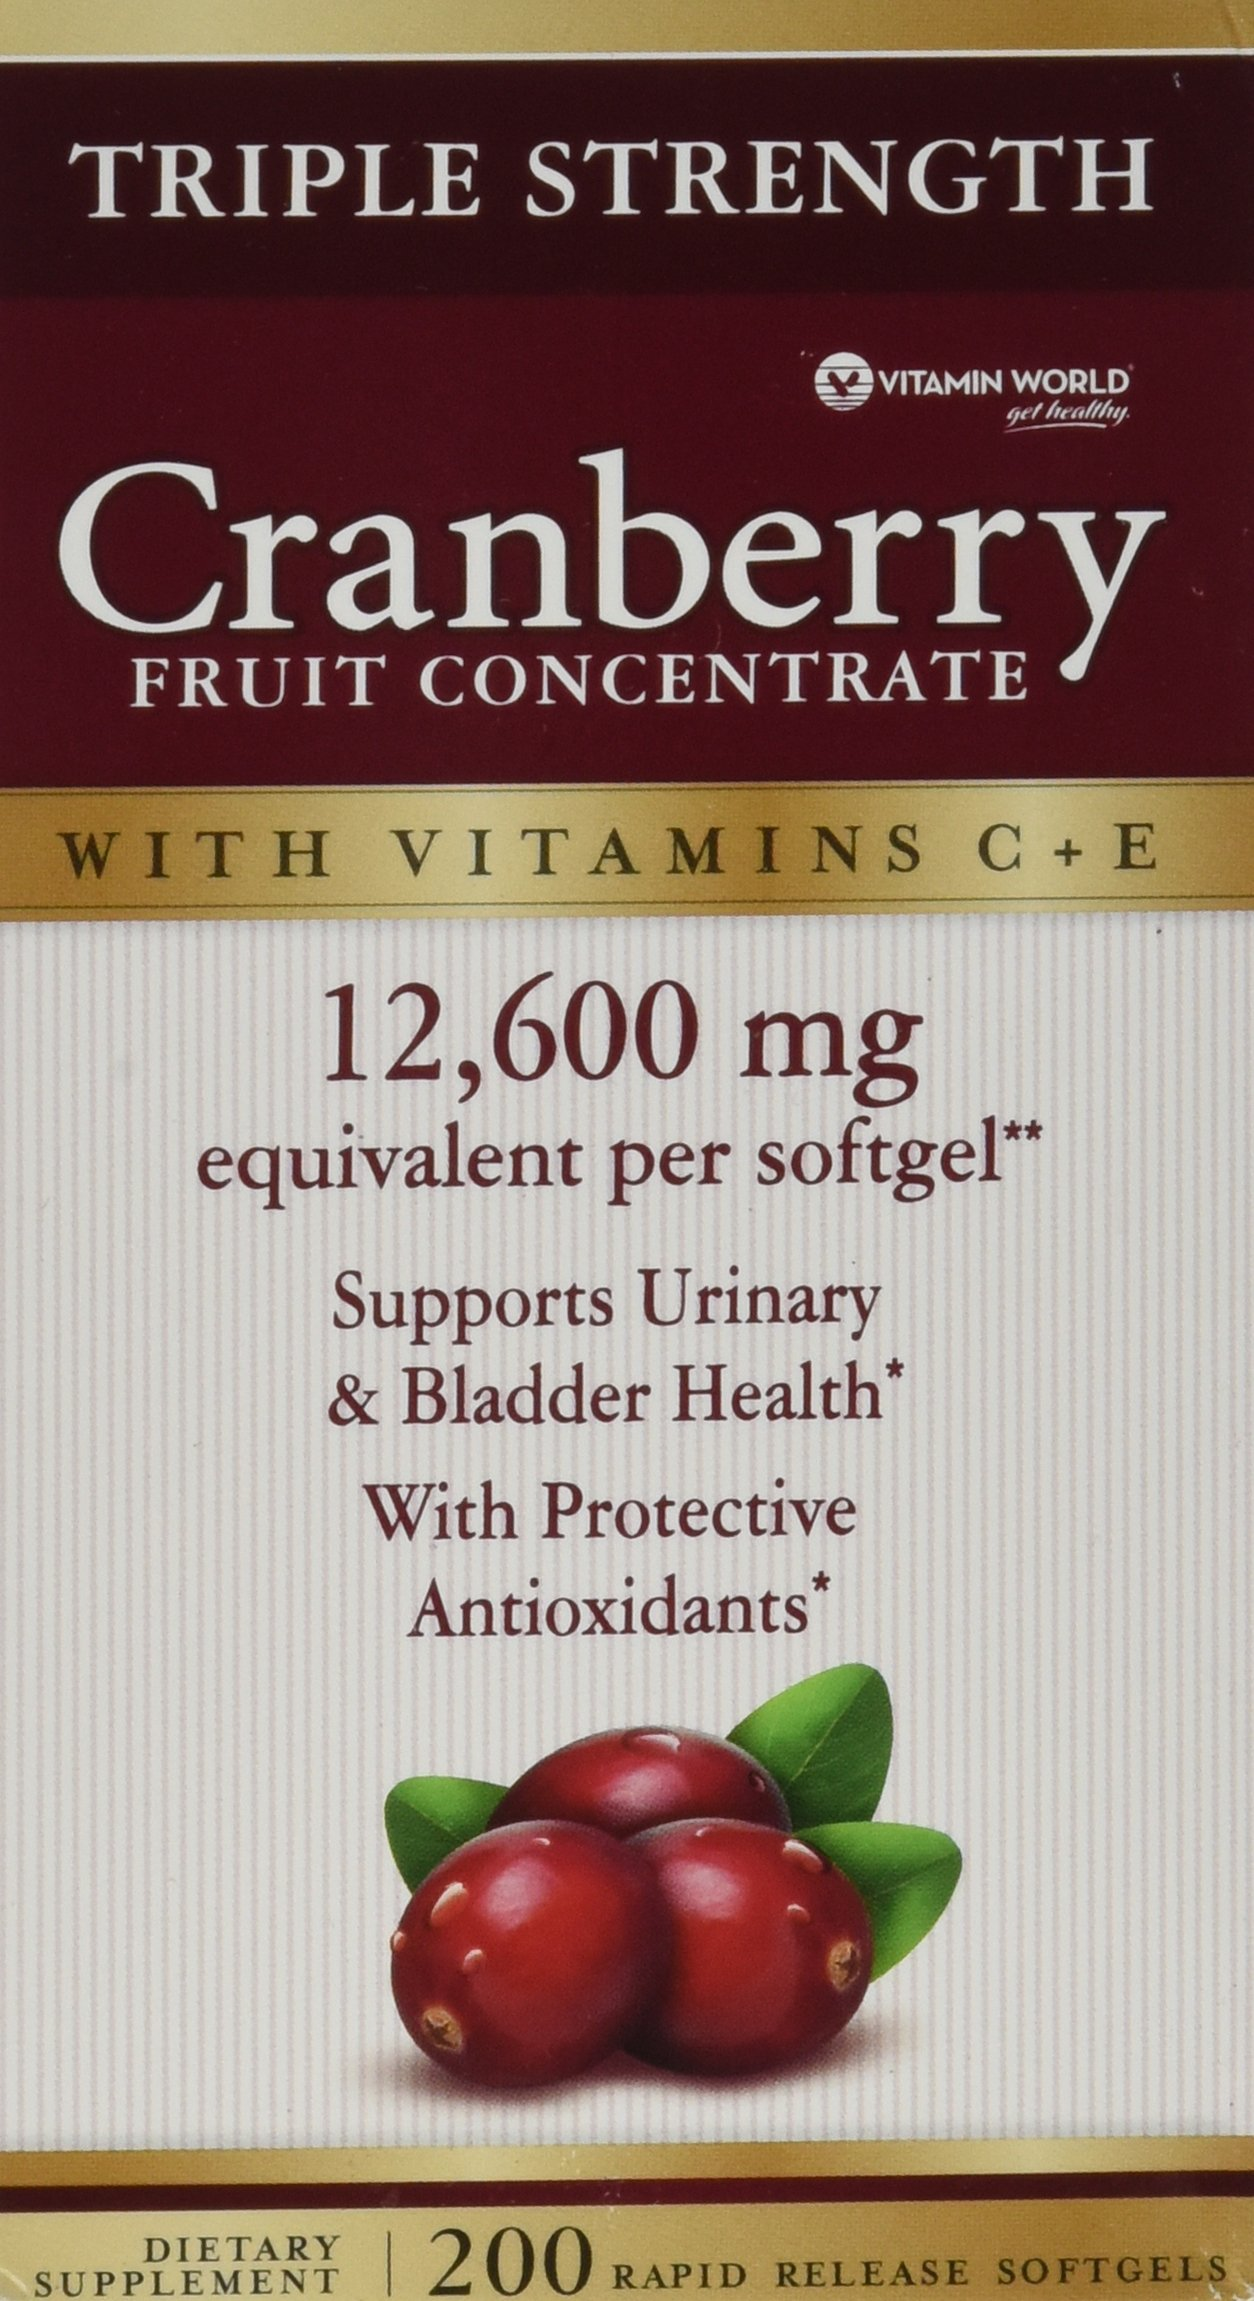 Vitamin World Triple Strength Natural Cranberry Fruit Concentrate 12,600 Mg, 200 Softgels